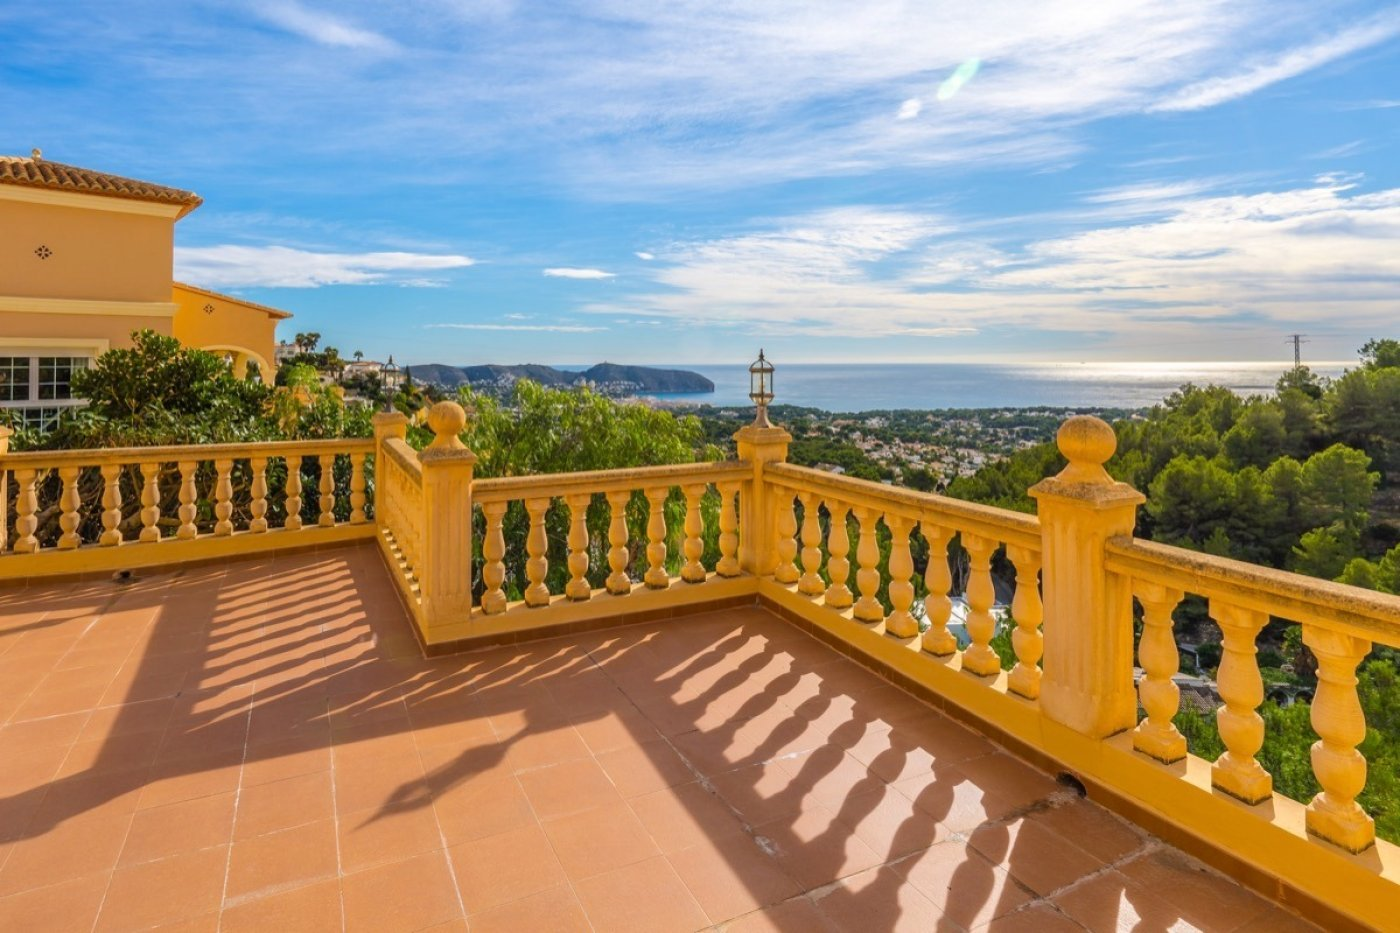 Fotogallerij - 4 - Exceptional homes in the Costa Blanca. Unparalleled Service. Exceptional properties in the Costa Blanca